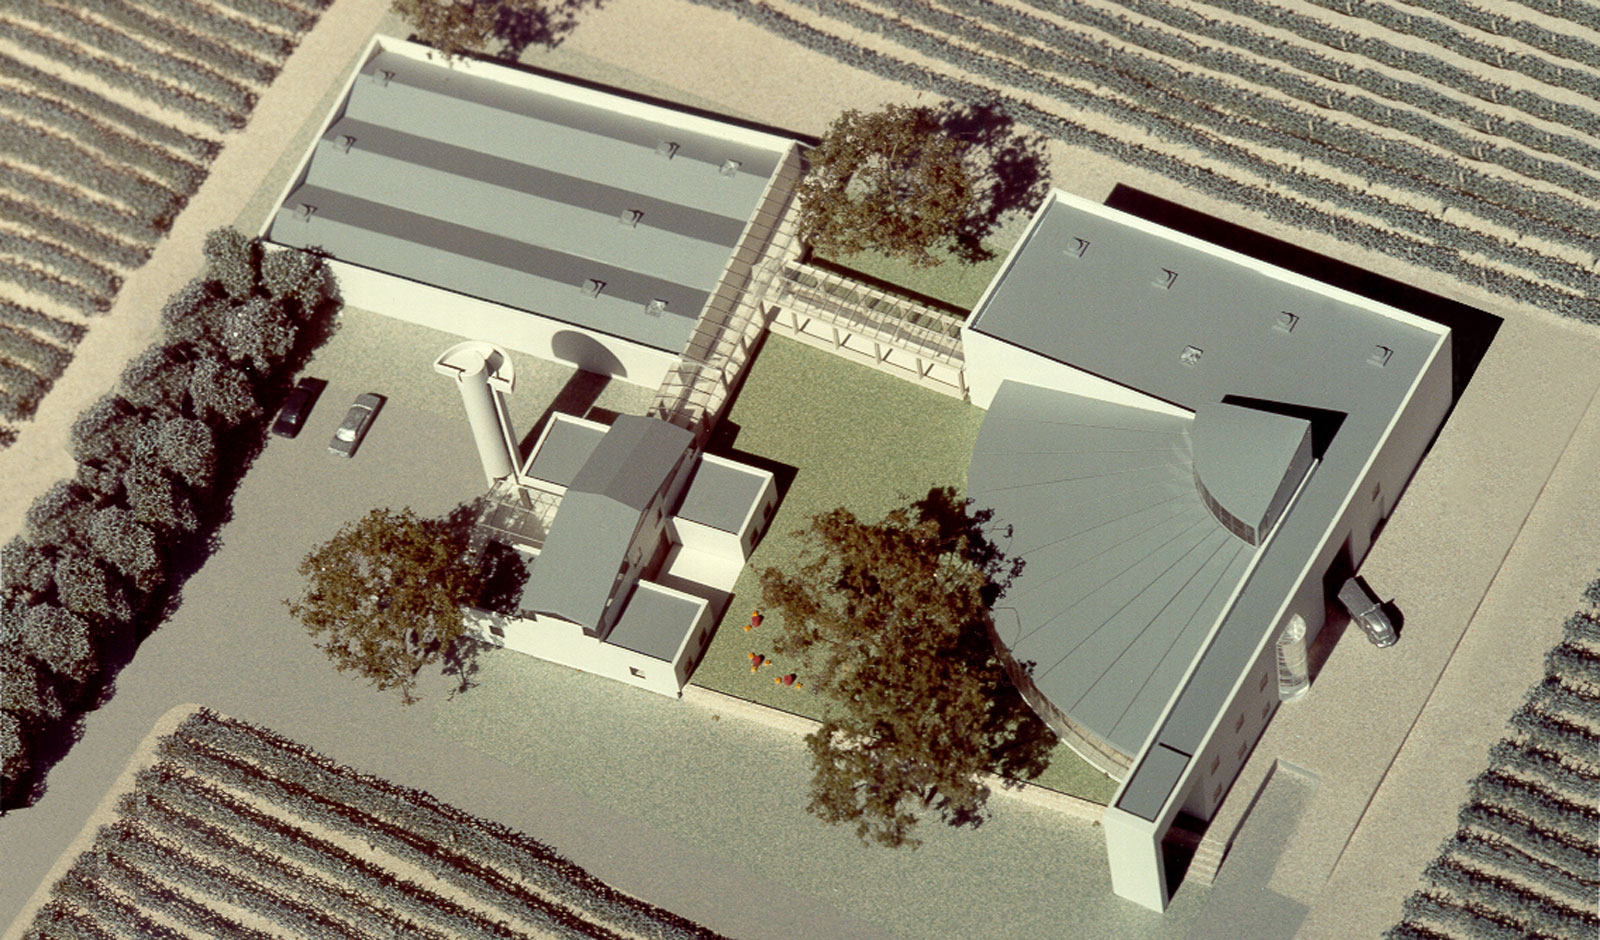 winery design and layout - top view